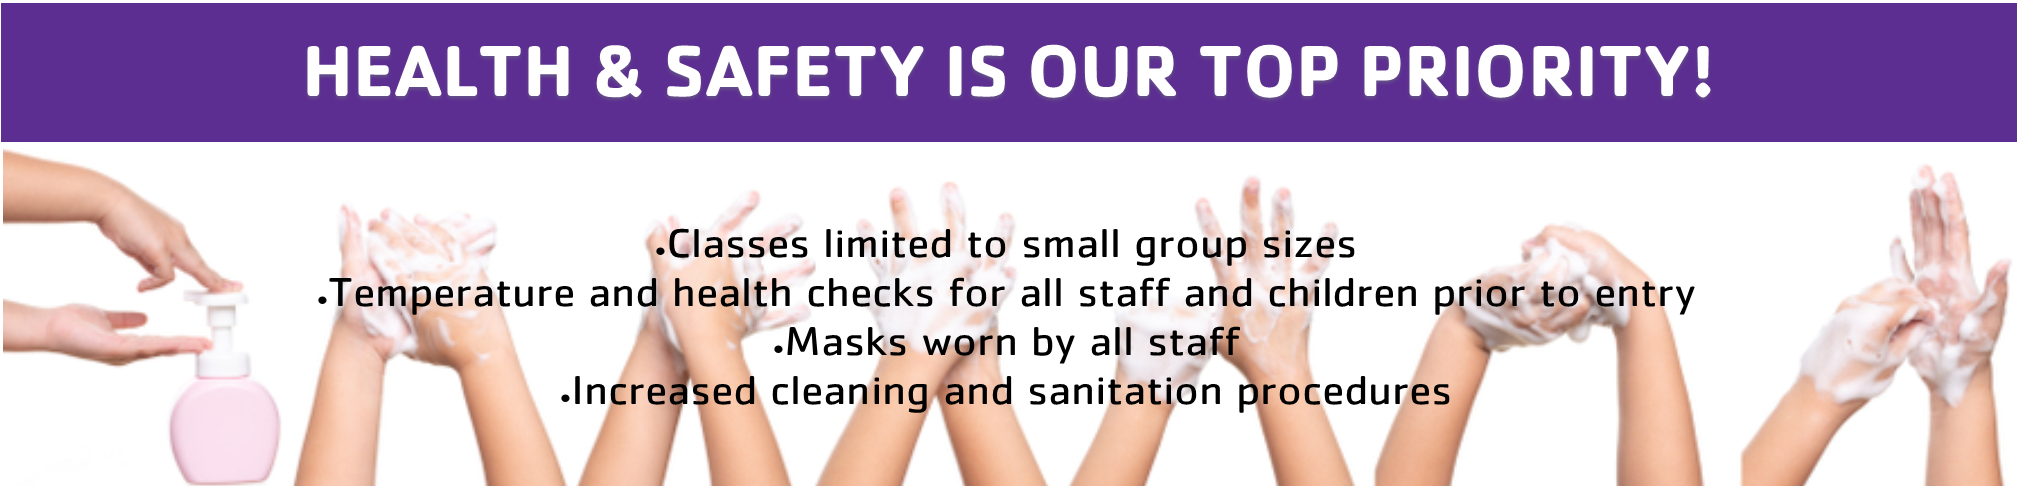 health and safety banner2